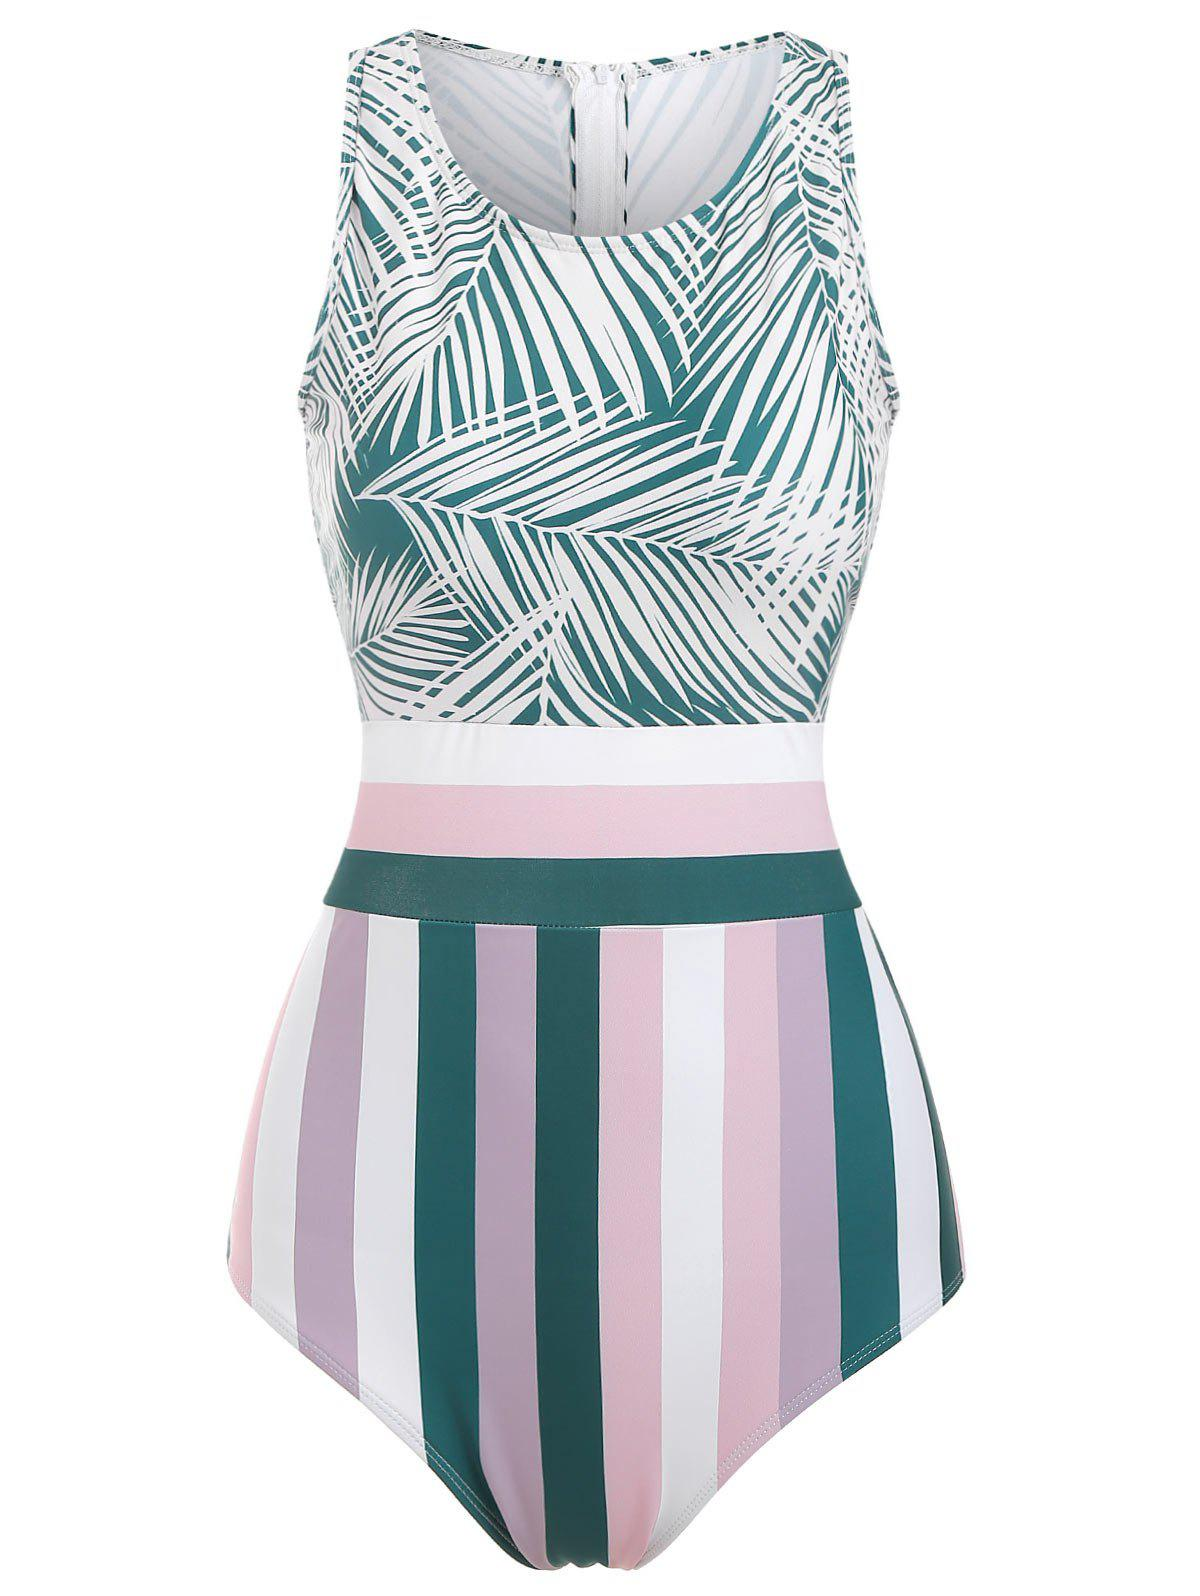 Buy Knotted Striped Leaves Print Swimsuit